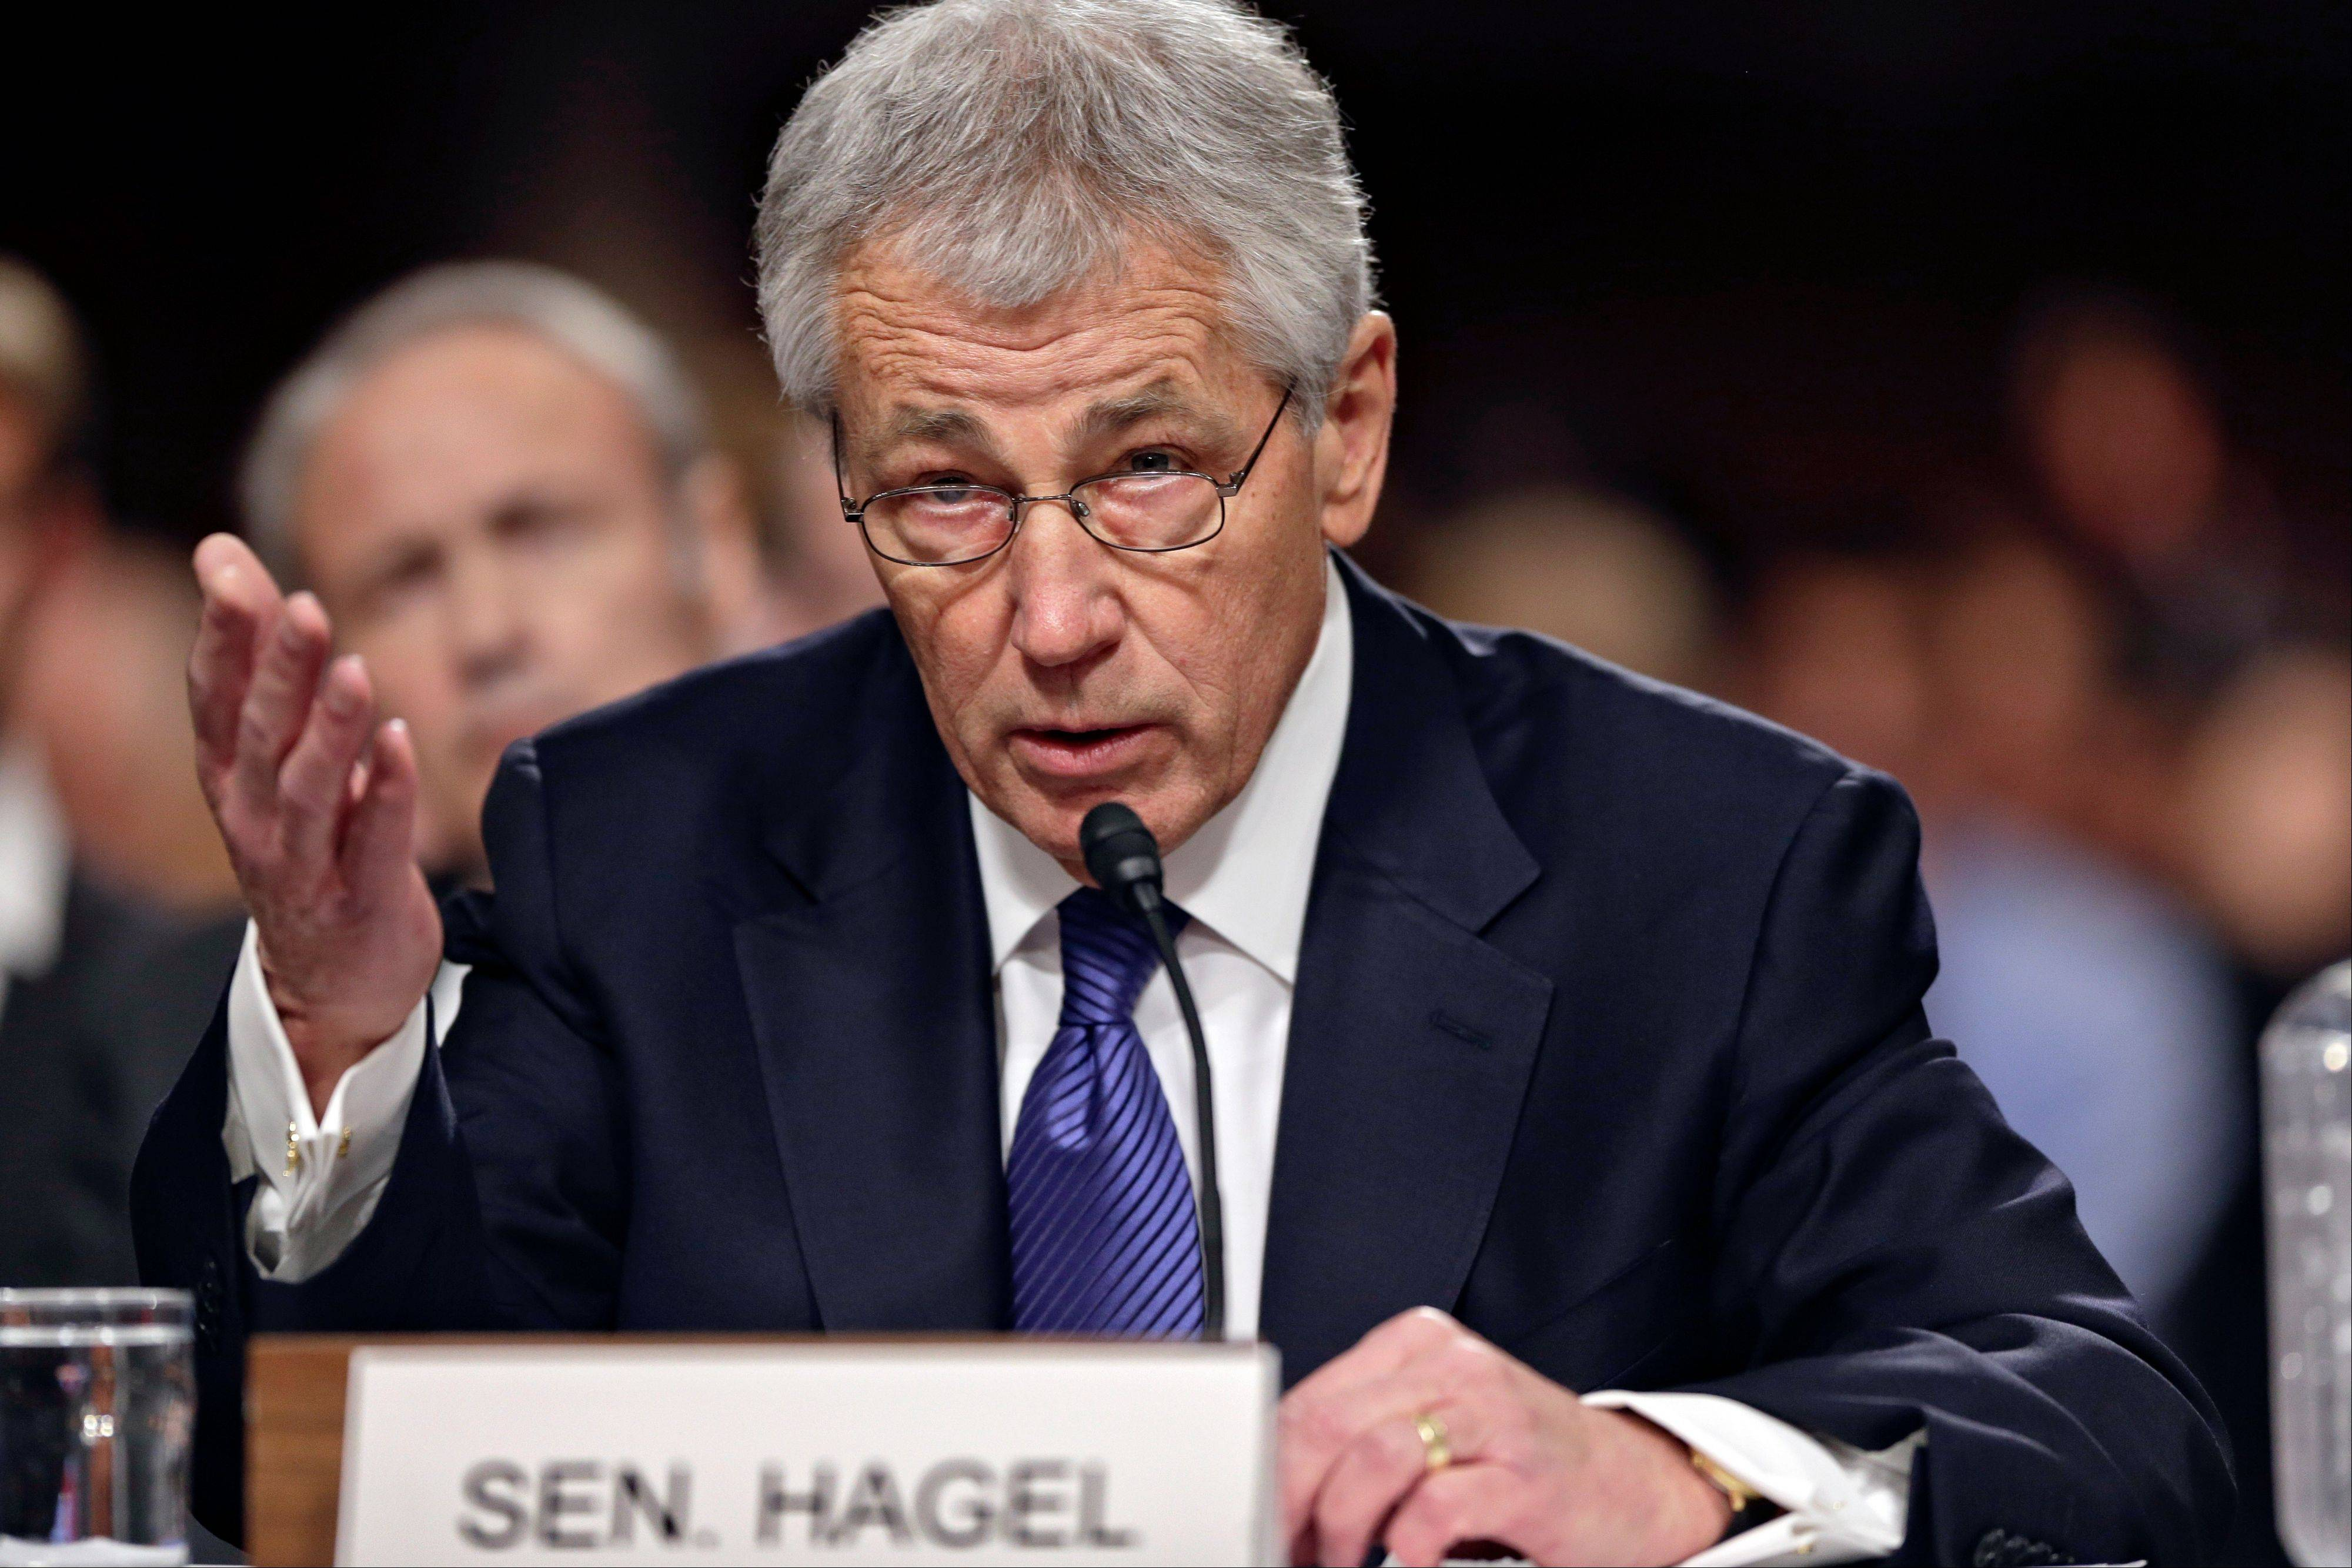 Republican Chuck Hagel, President Obama�s choice for defense secretary, testifies before the Senate Armed Services Committee during his confirmation hearing, on Capitol Hill in Washington, Thursday, Jan. 31, 2013. (AP Photo/J. Scott Applewhite)